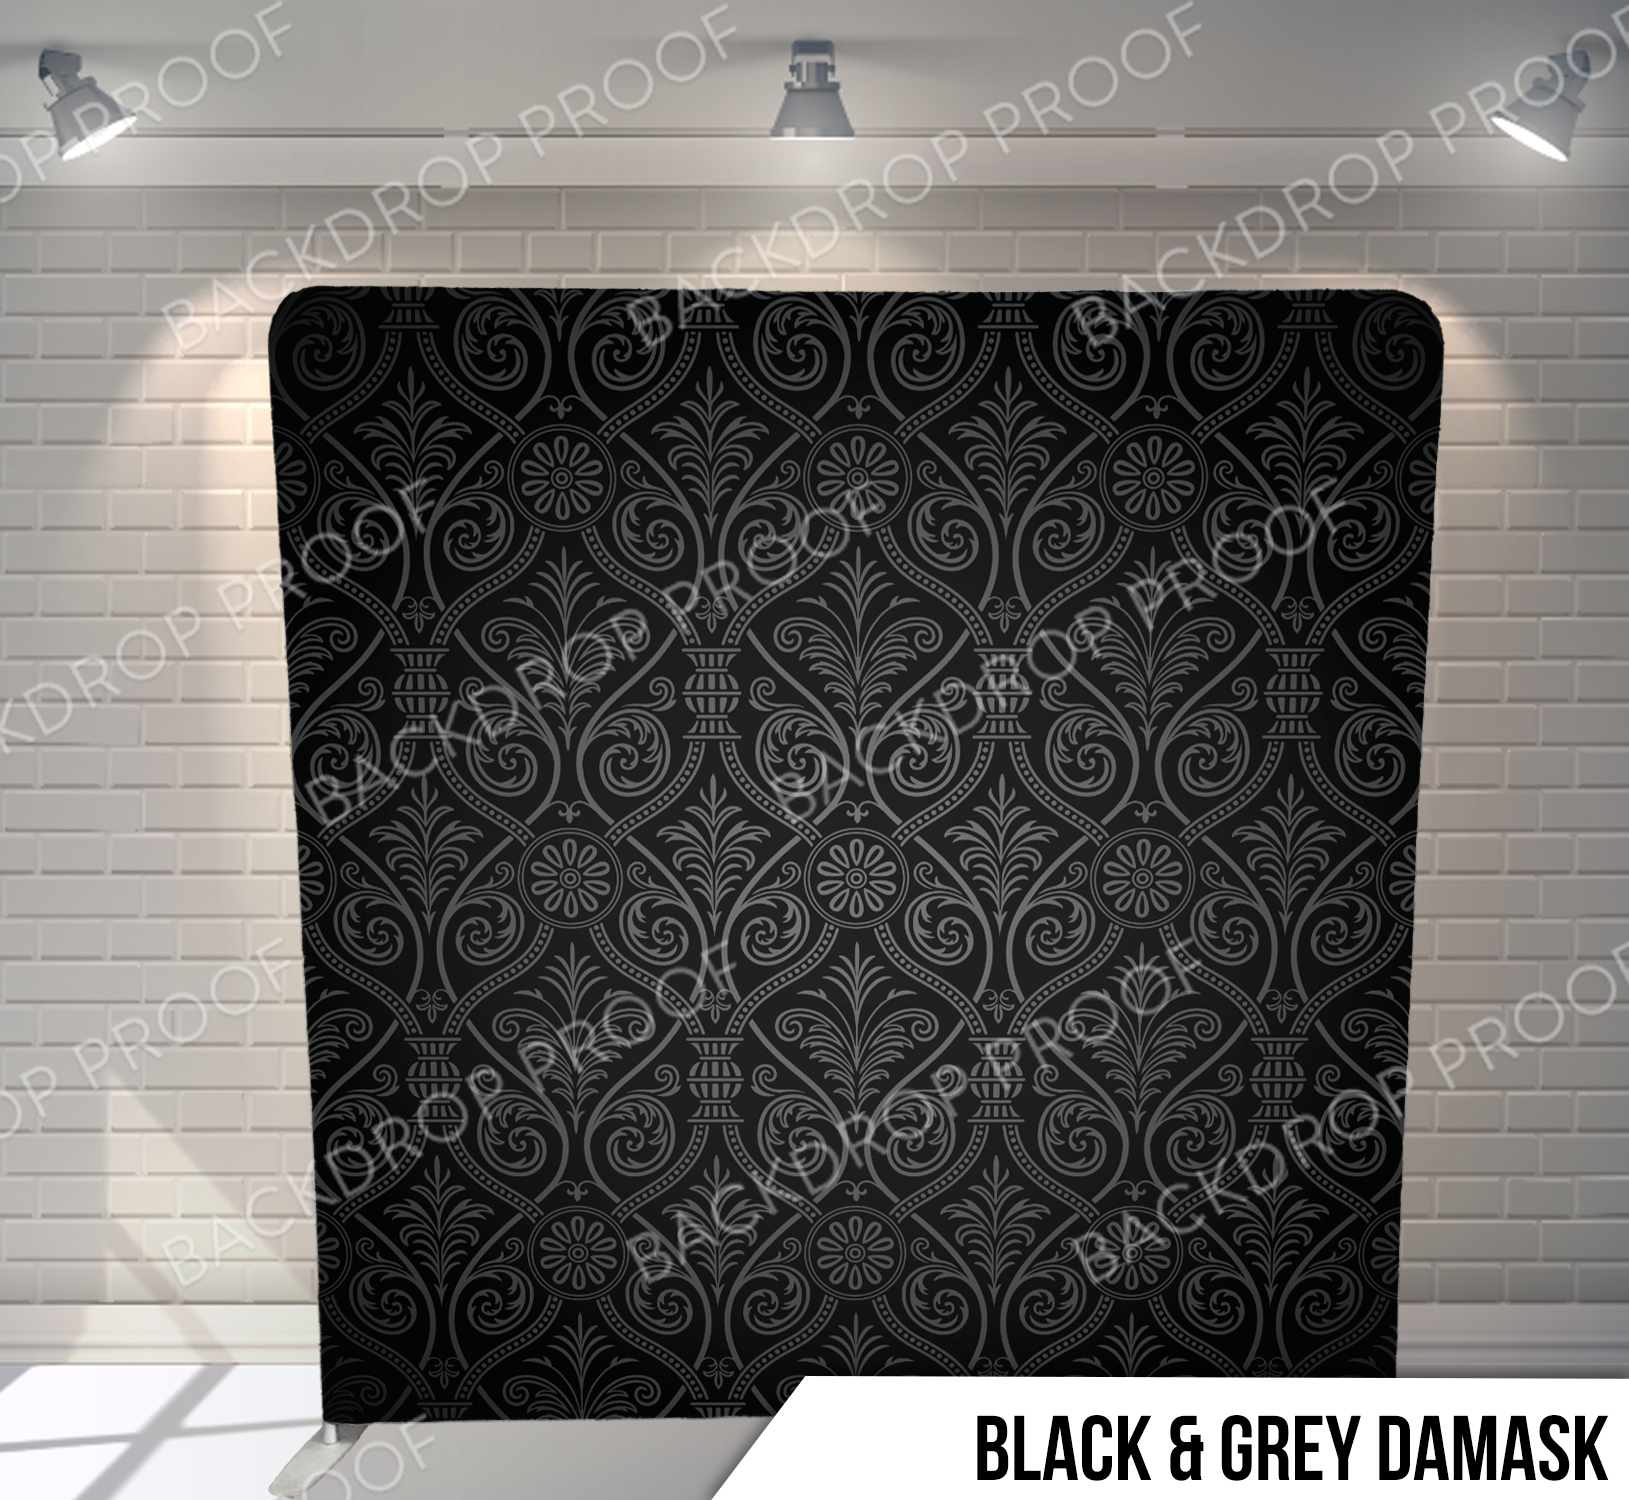 Pillow_BlackGreyDamask_G (1).jpg